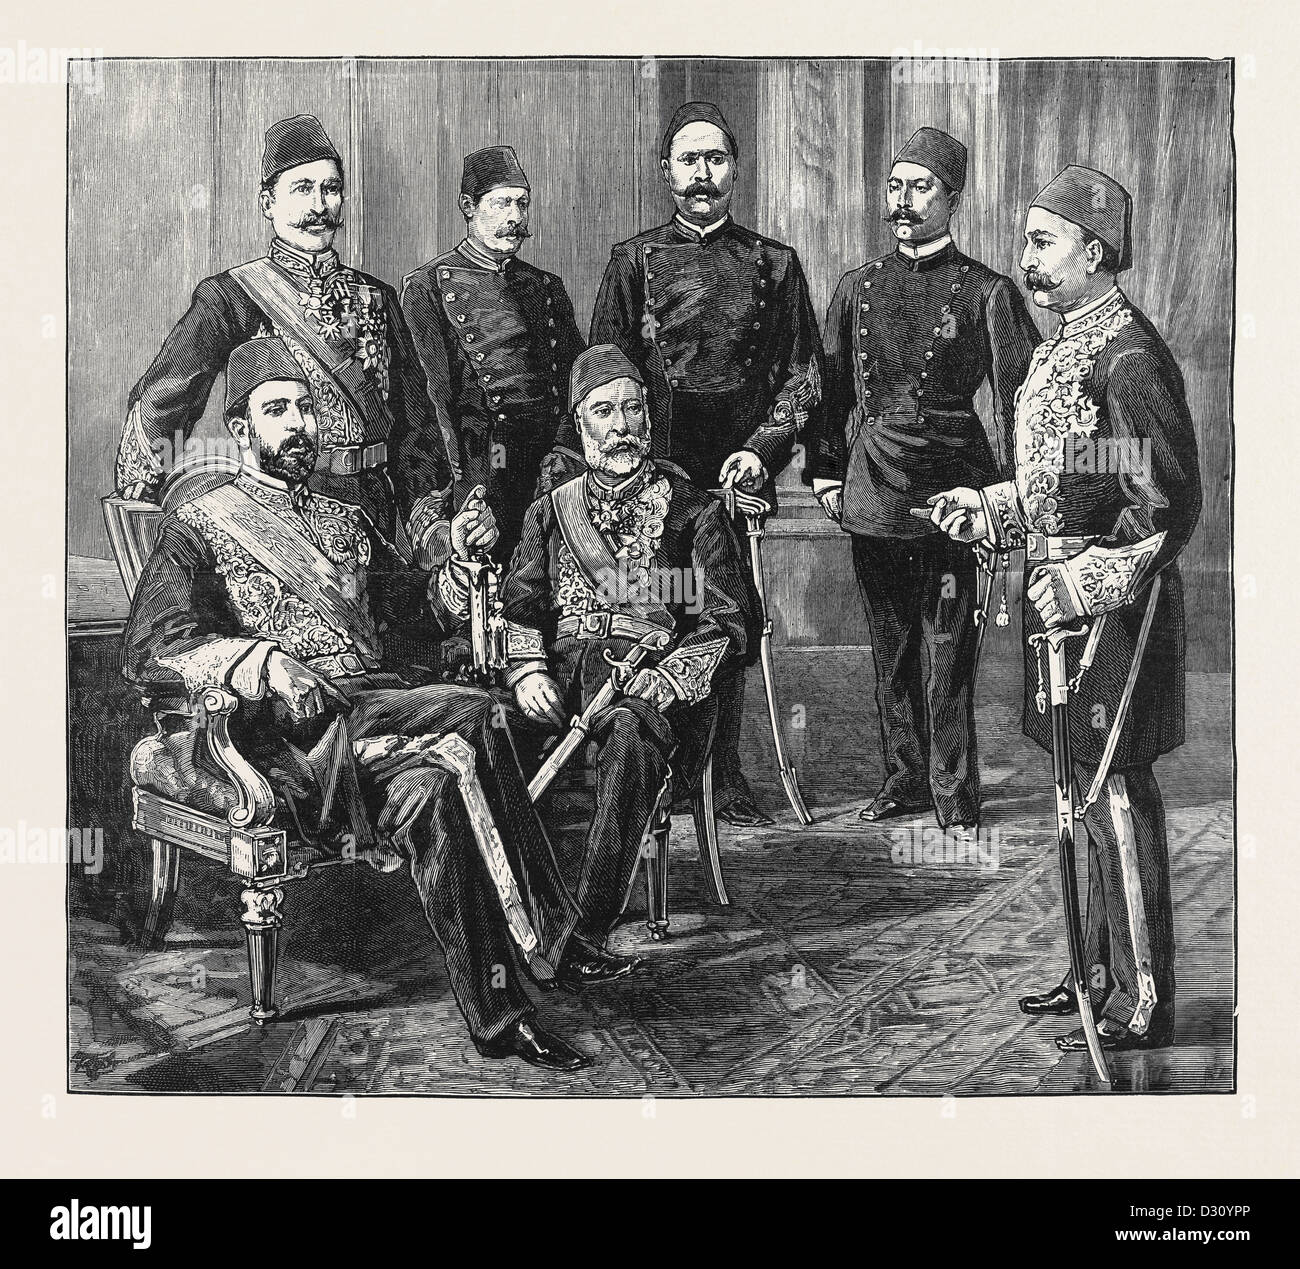 THE CRISIS IN EGYPT: THE KHEDIVE AND SOME LEADERS OF THE NATIONAL PARTY - Stock Image